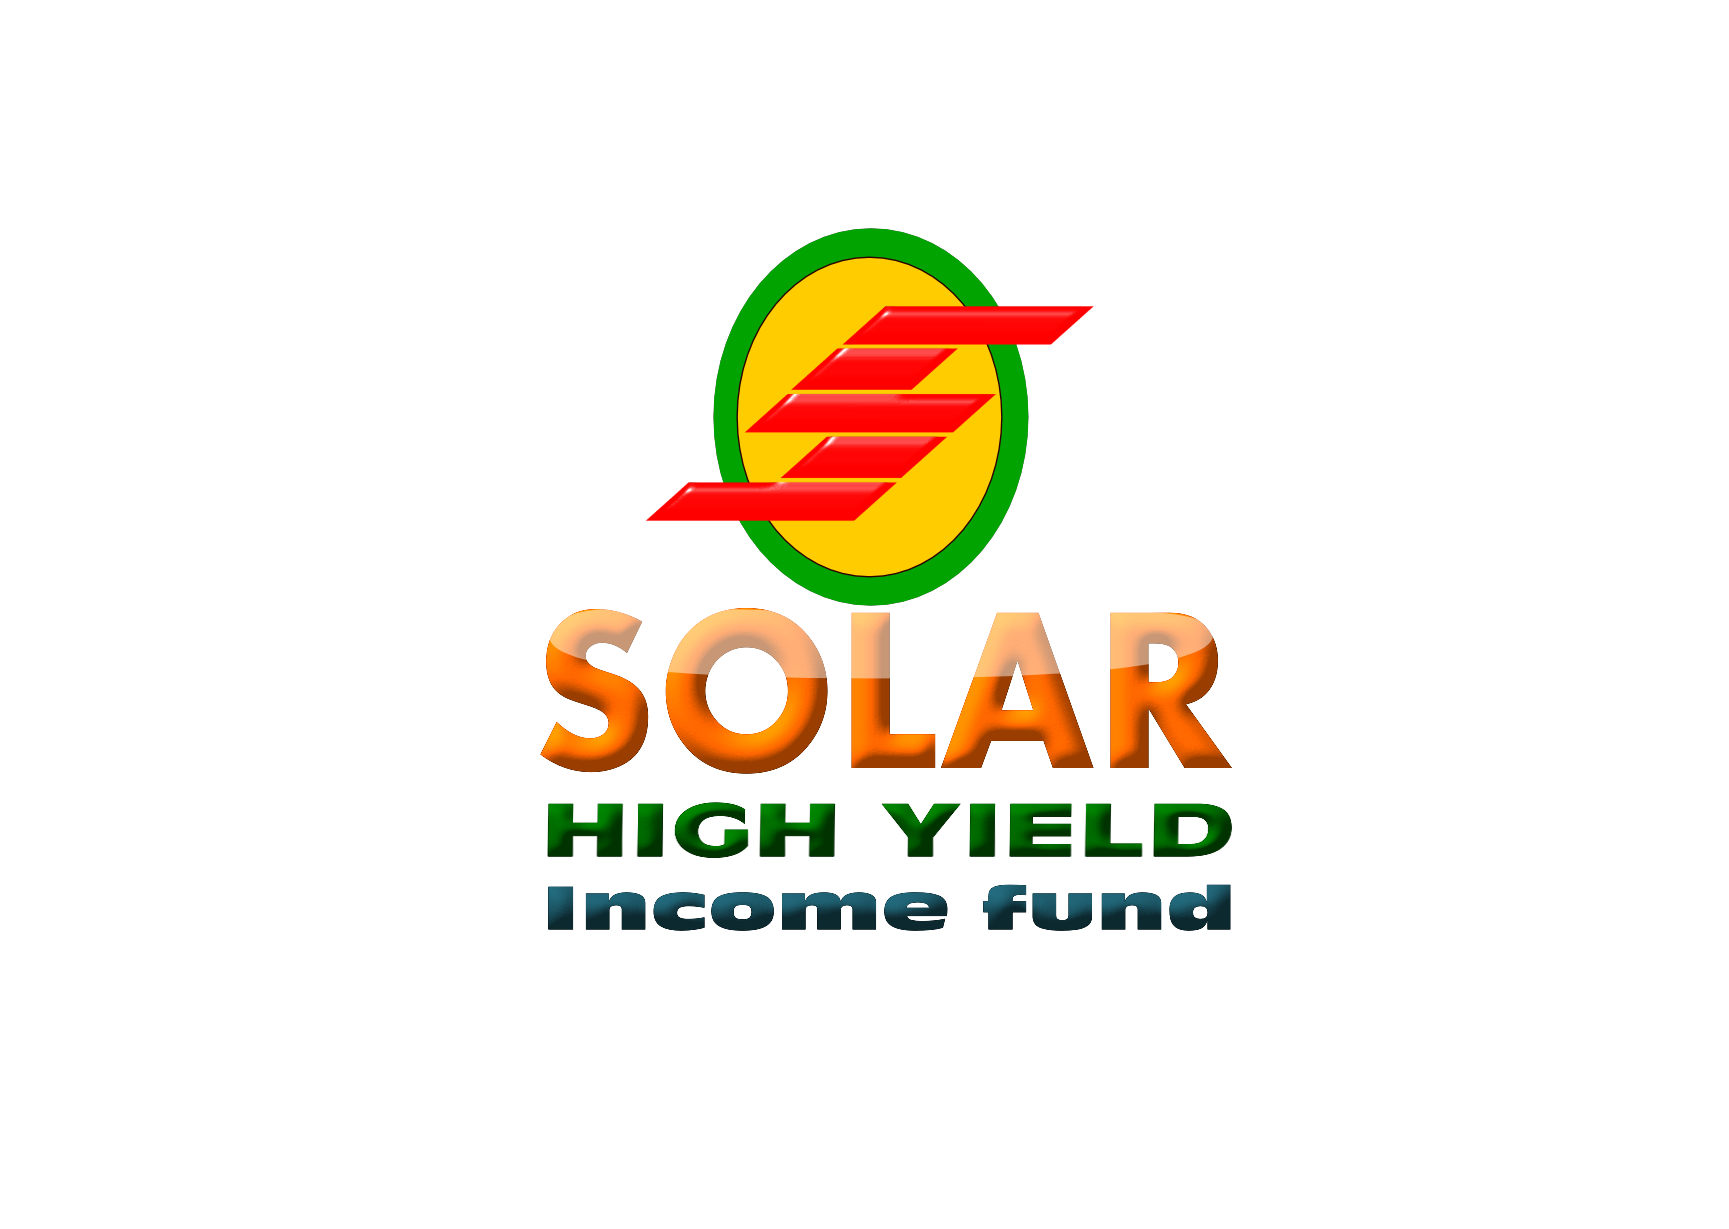 Logo Design by Joseph calunsag Cagaanan - Entry No. 111 in the Logo Design Contest Logo Design Needed for Exciting New Company Solar High Yield Income Fund.